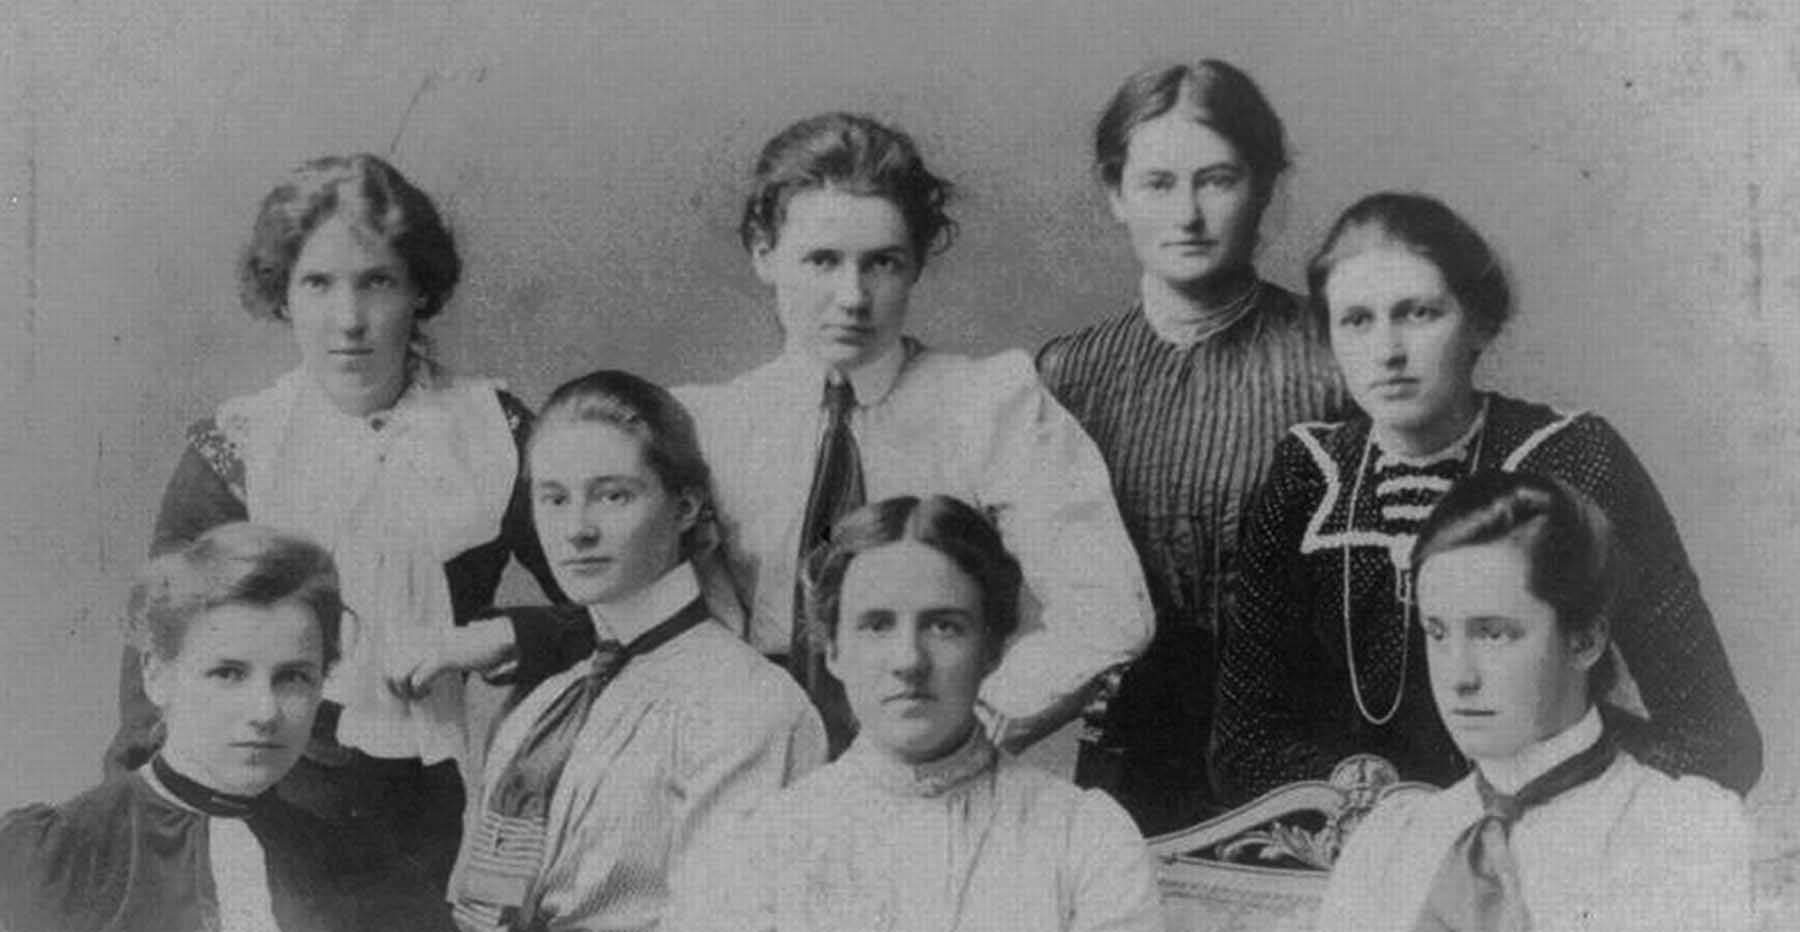 A black and white photo of a group of first-year students at Newnham College (1900), with Ida Slater sitting at the front row, far right